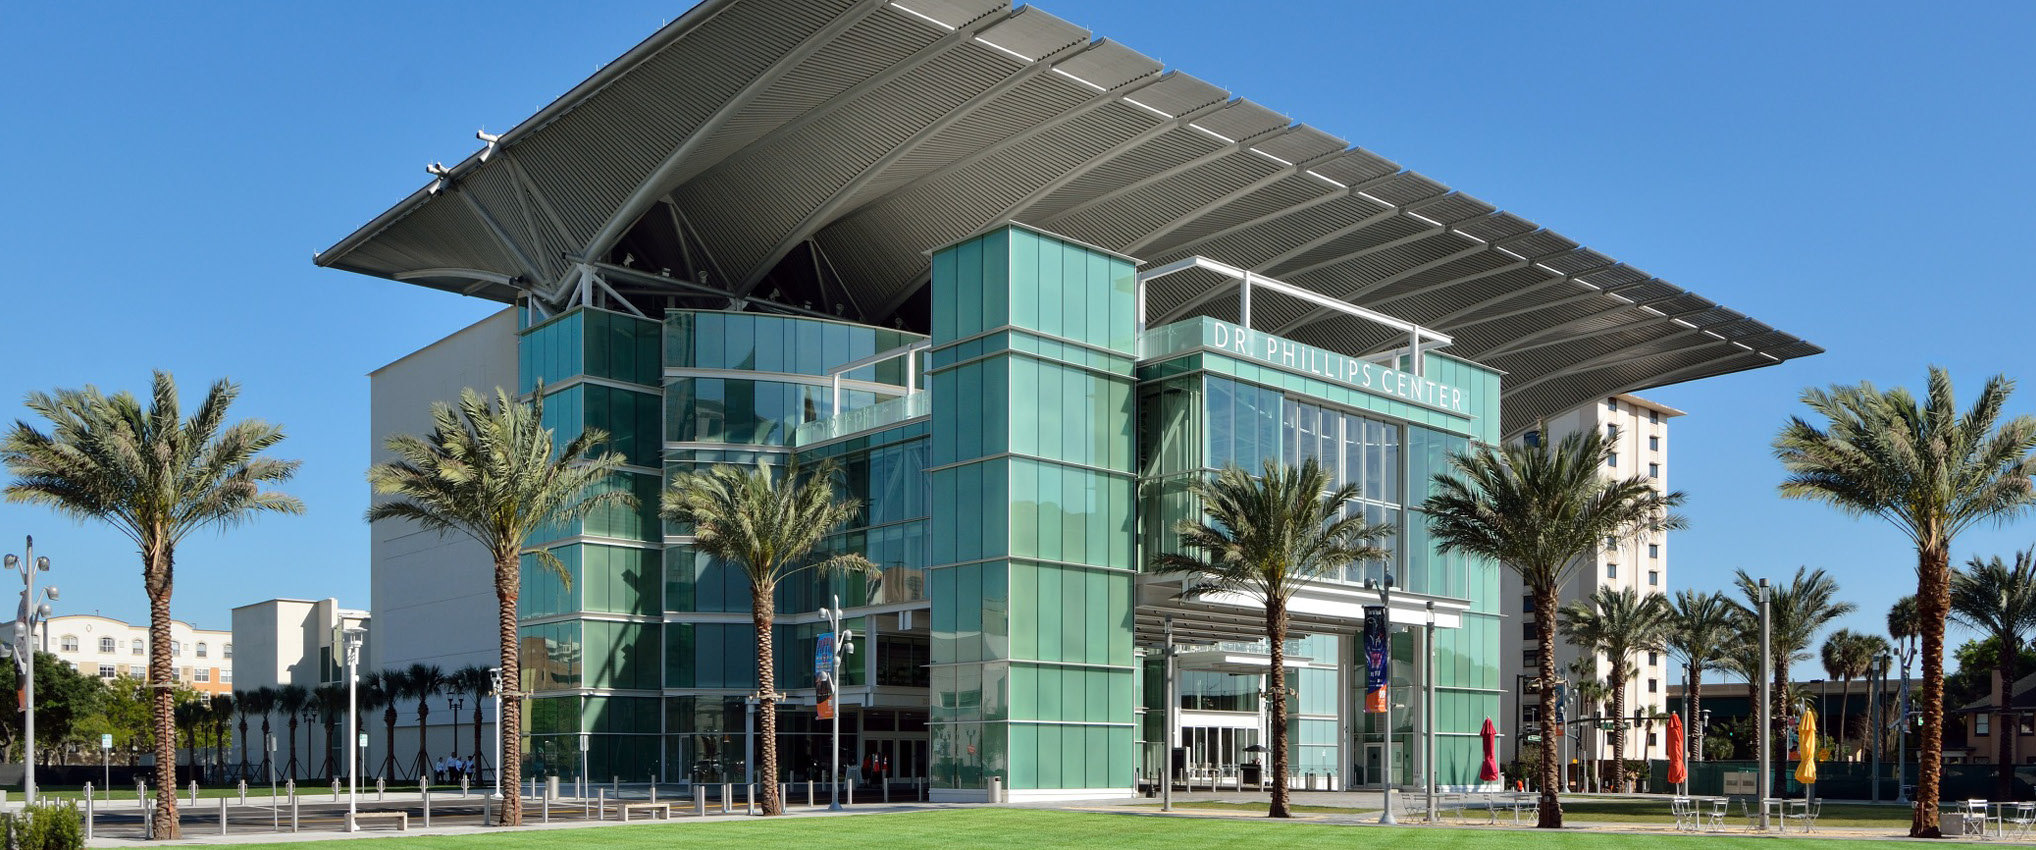 HKS Designers Help Give Glitzy Look to Dr. Phillips Center for the Performing Arts